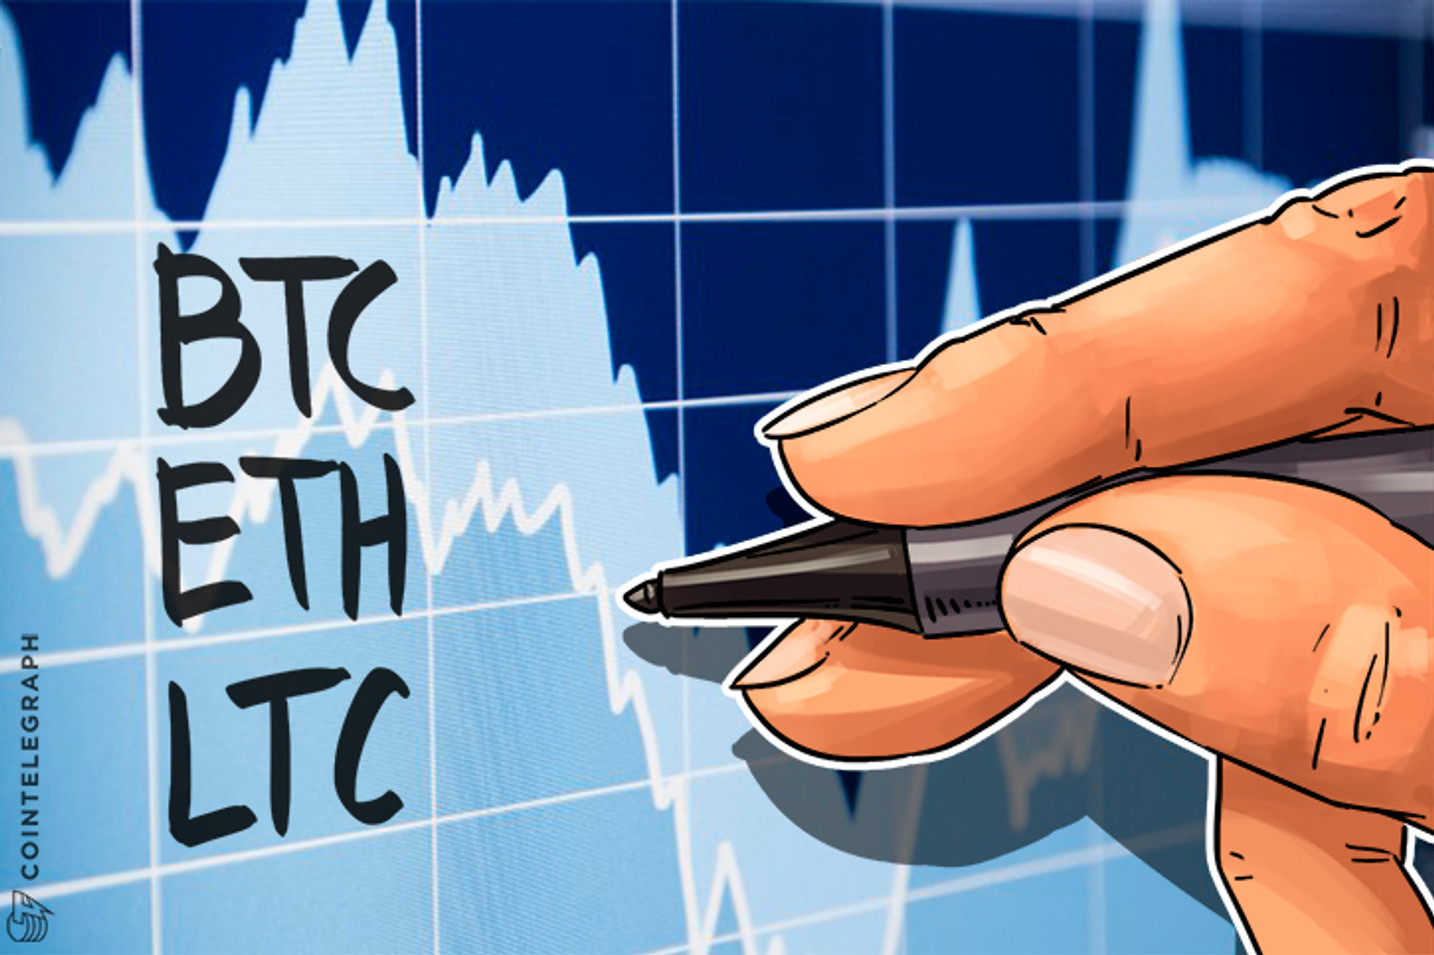 Price analysis: BTC, ETH, LTC